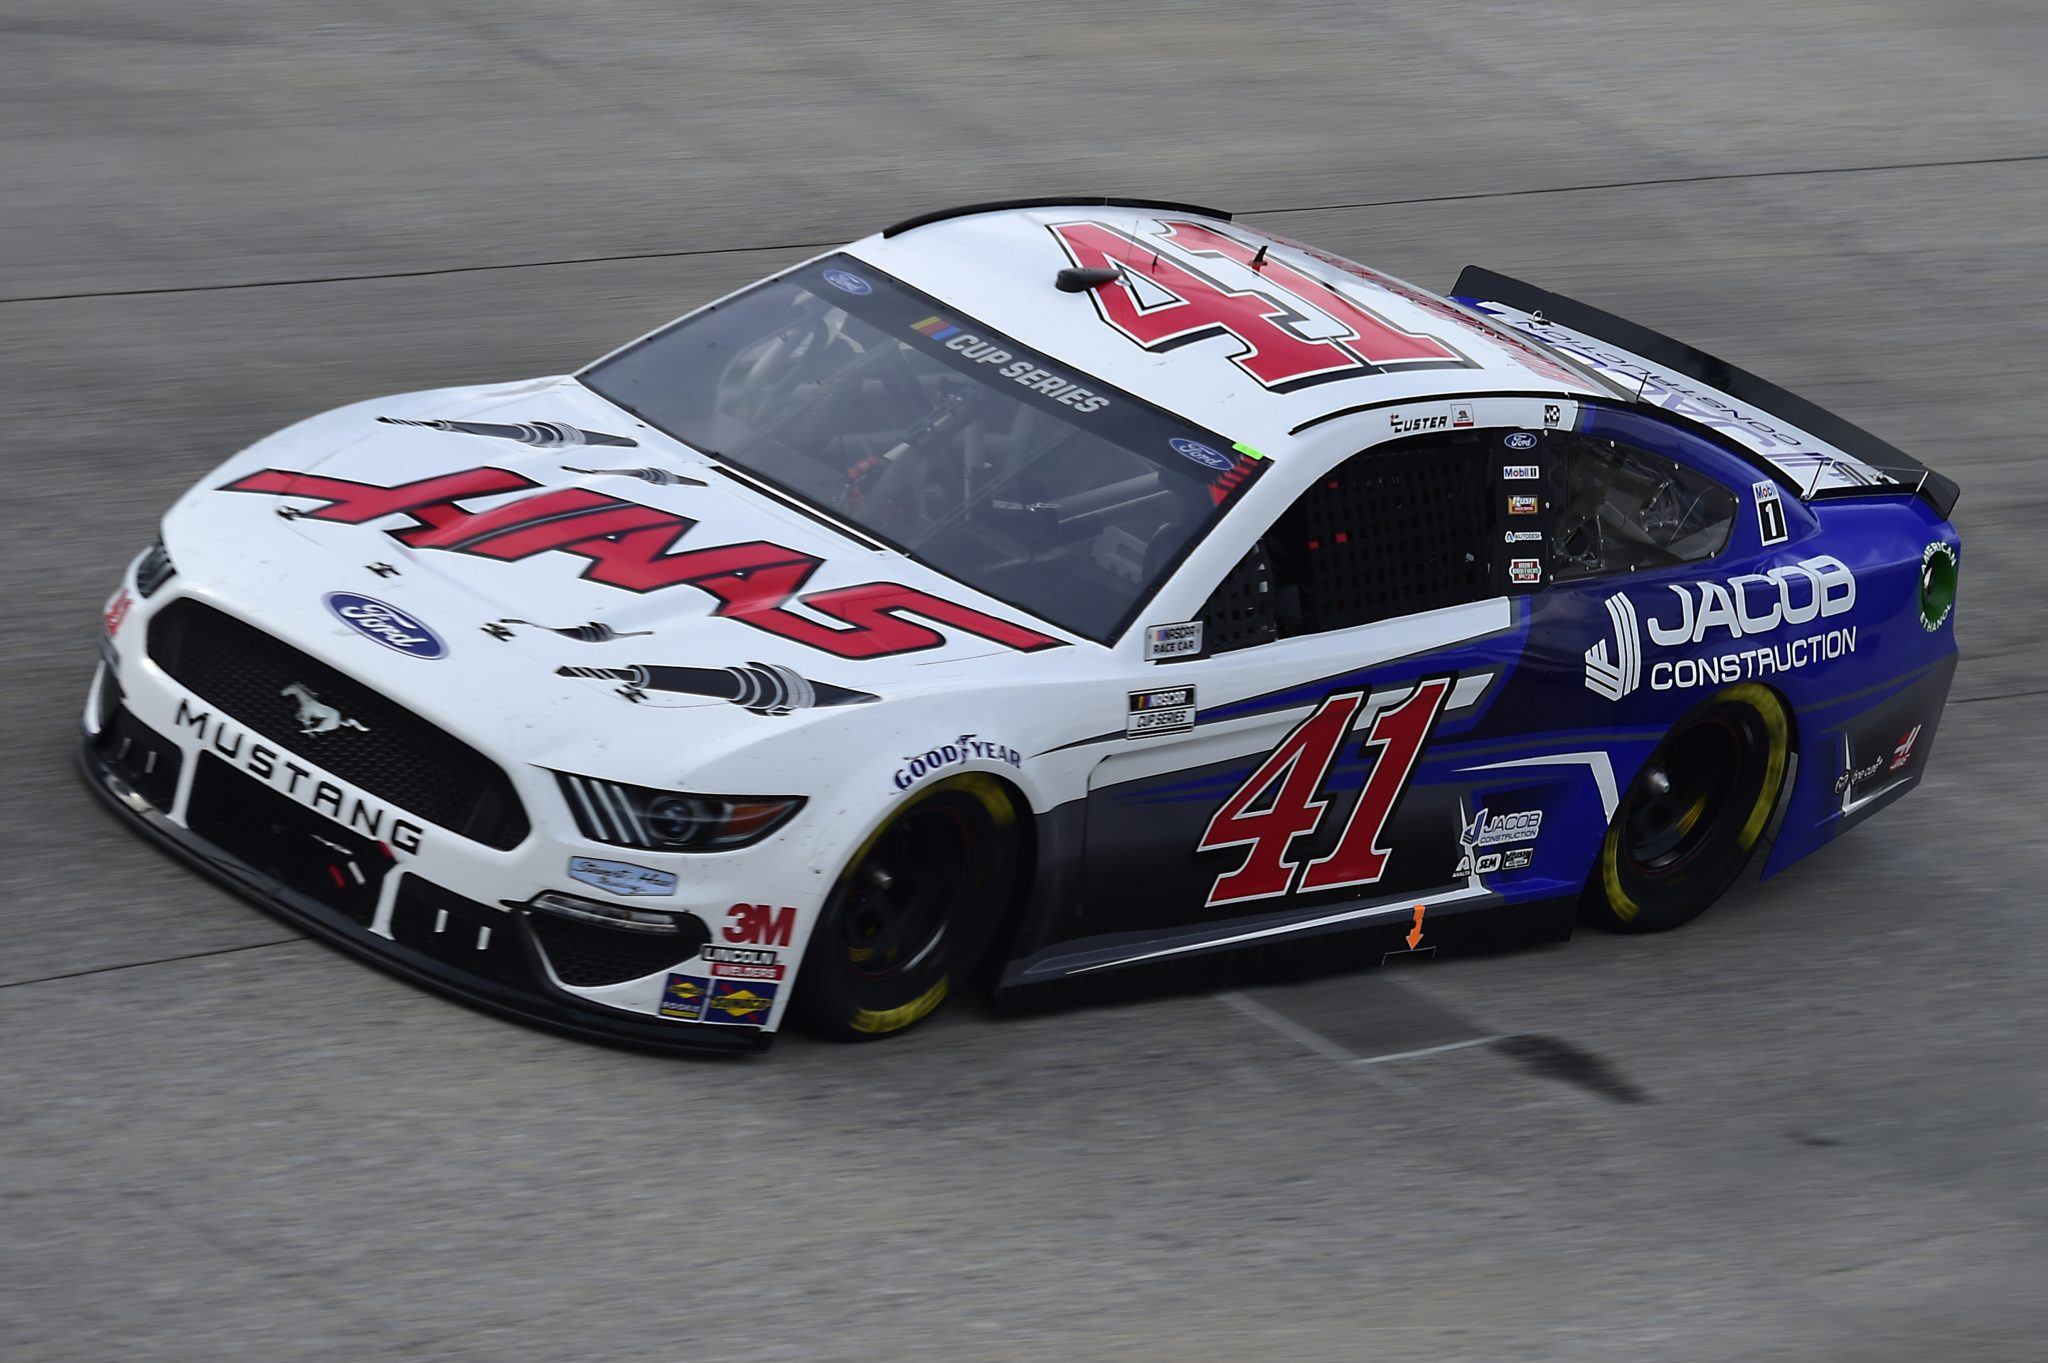 DOVER, DELAWARE - AUGUST 22: Cole Custer, driver of the #41 HaasTooling.com/Jacom Co Ford, drives during the NASCAR Cup Series Drydene 311 at Dover International Speedway on August 22, 2020 in Dover, Delaware. (Photo by Jared C. Tilton/Getty Images) | Getty Images